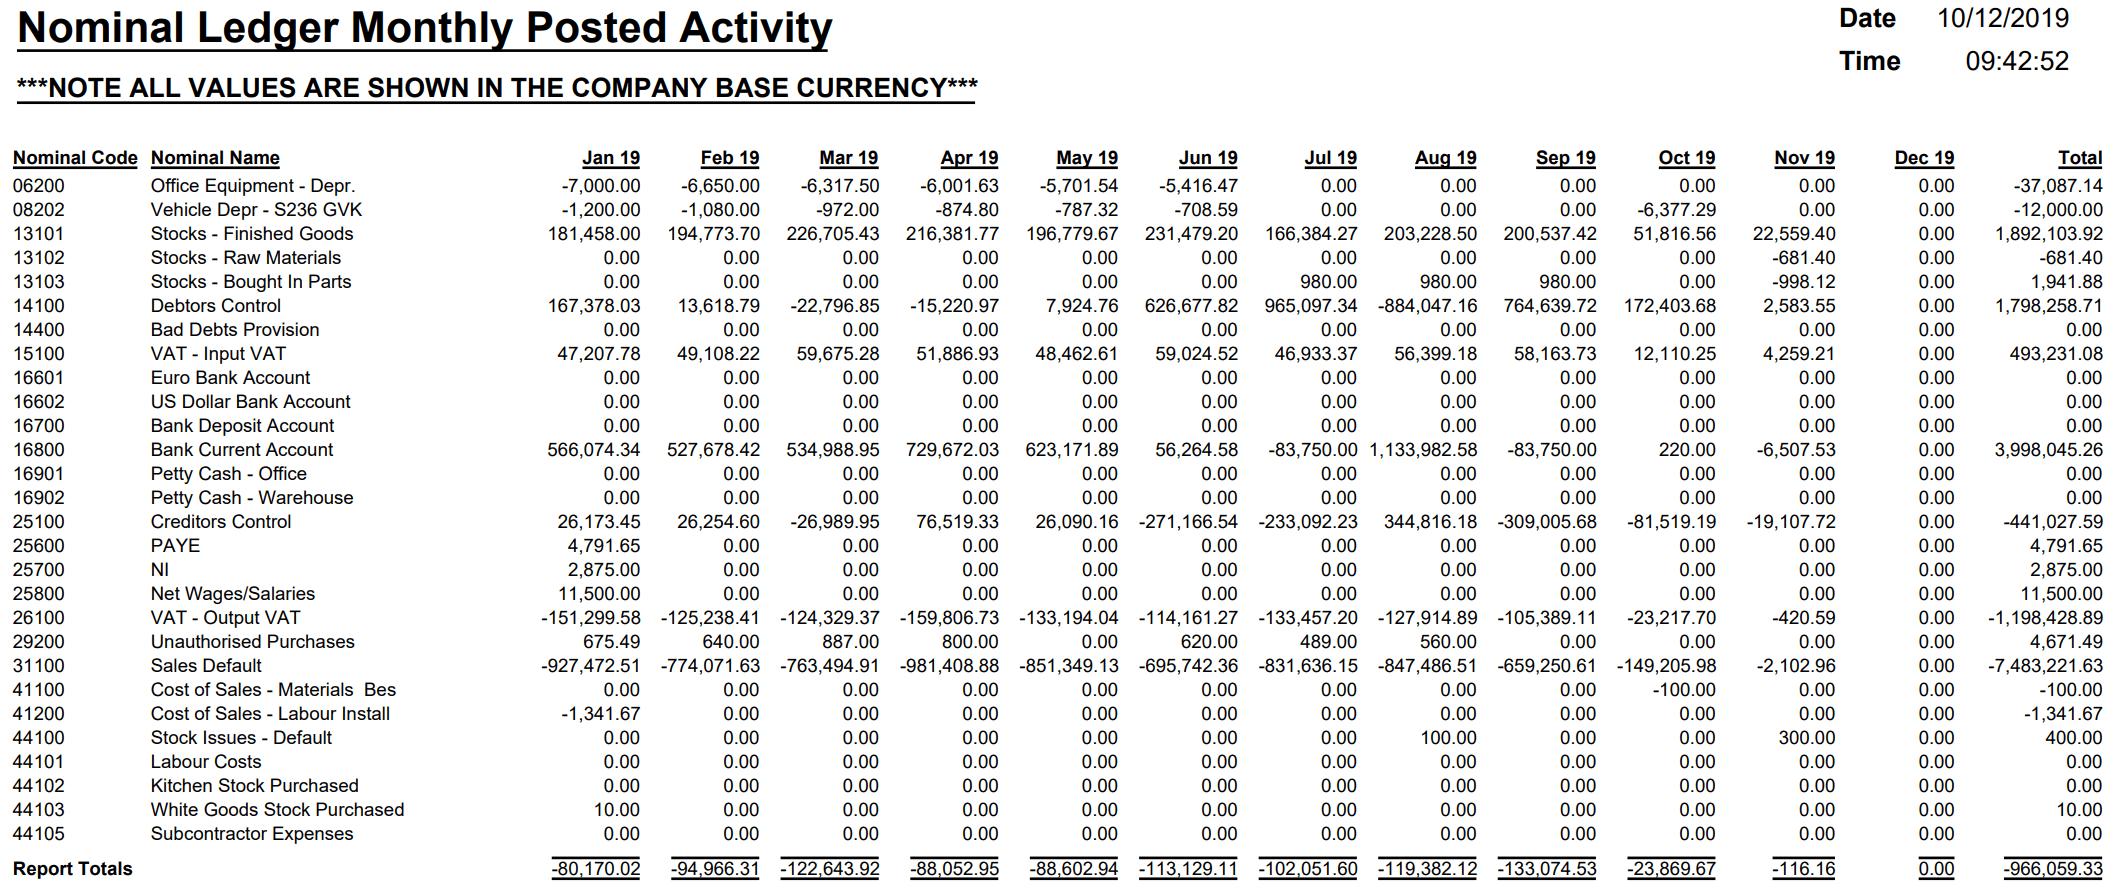 Nominal Ledger Monthly Posted Activity